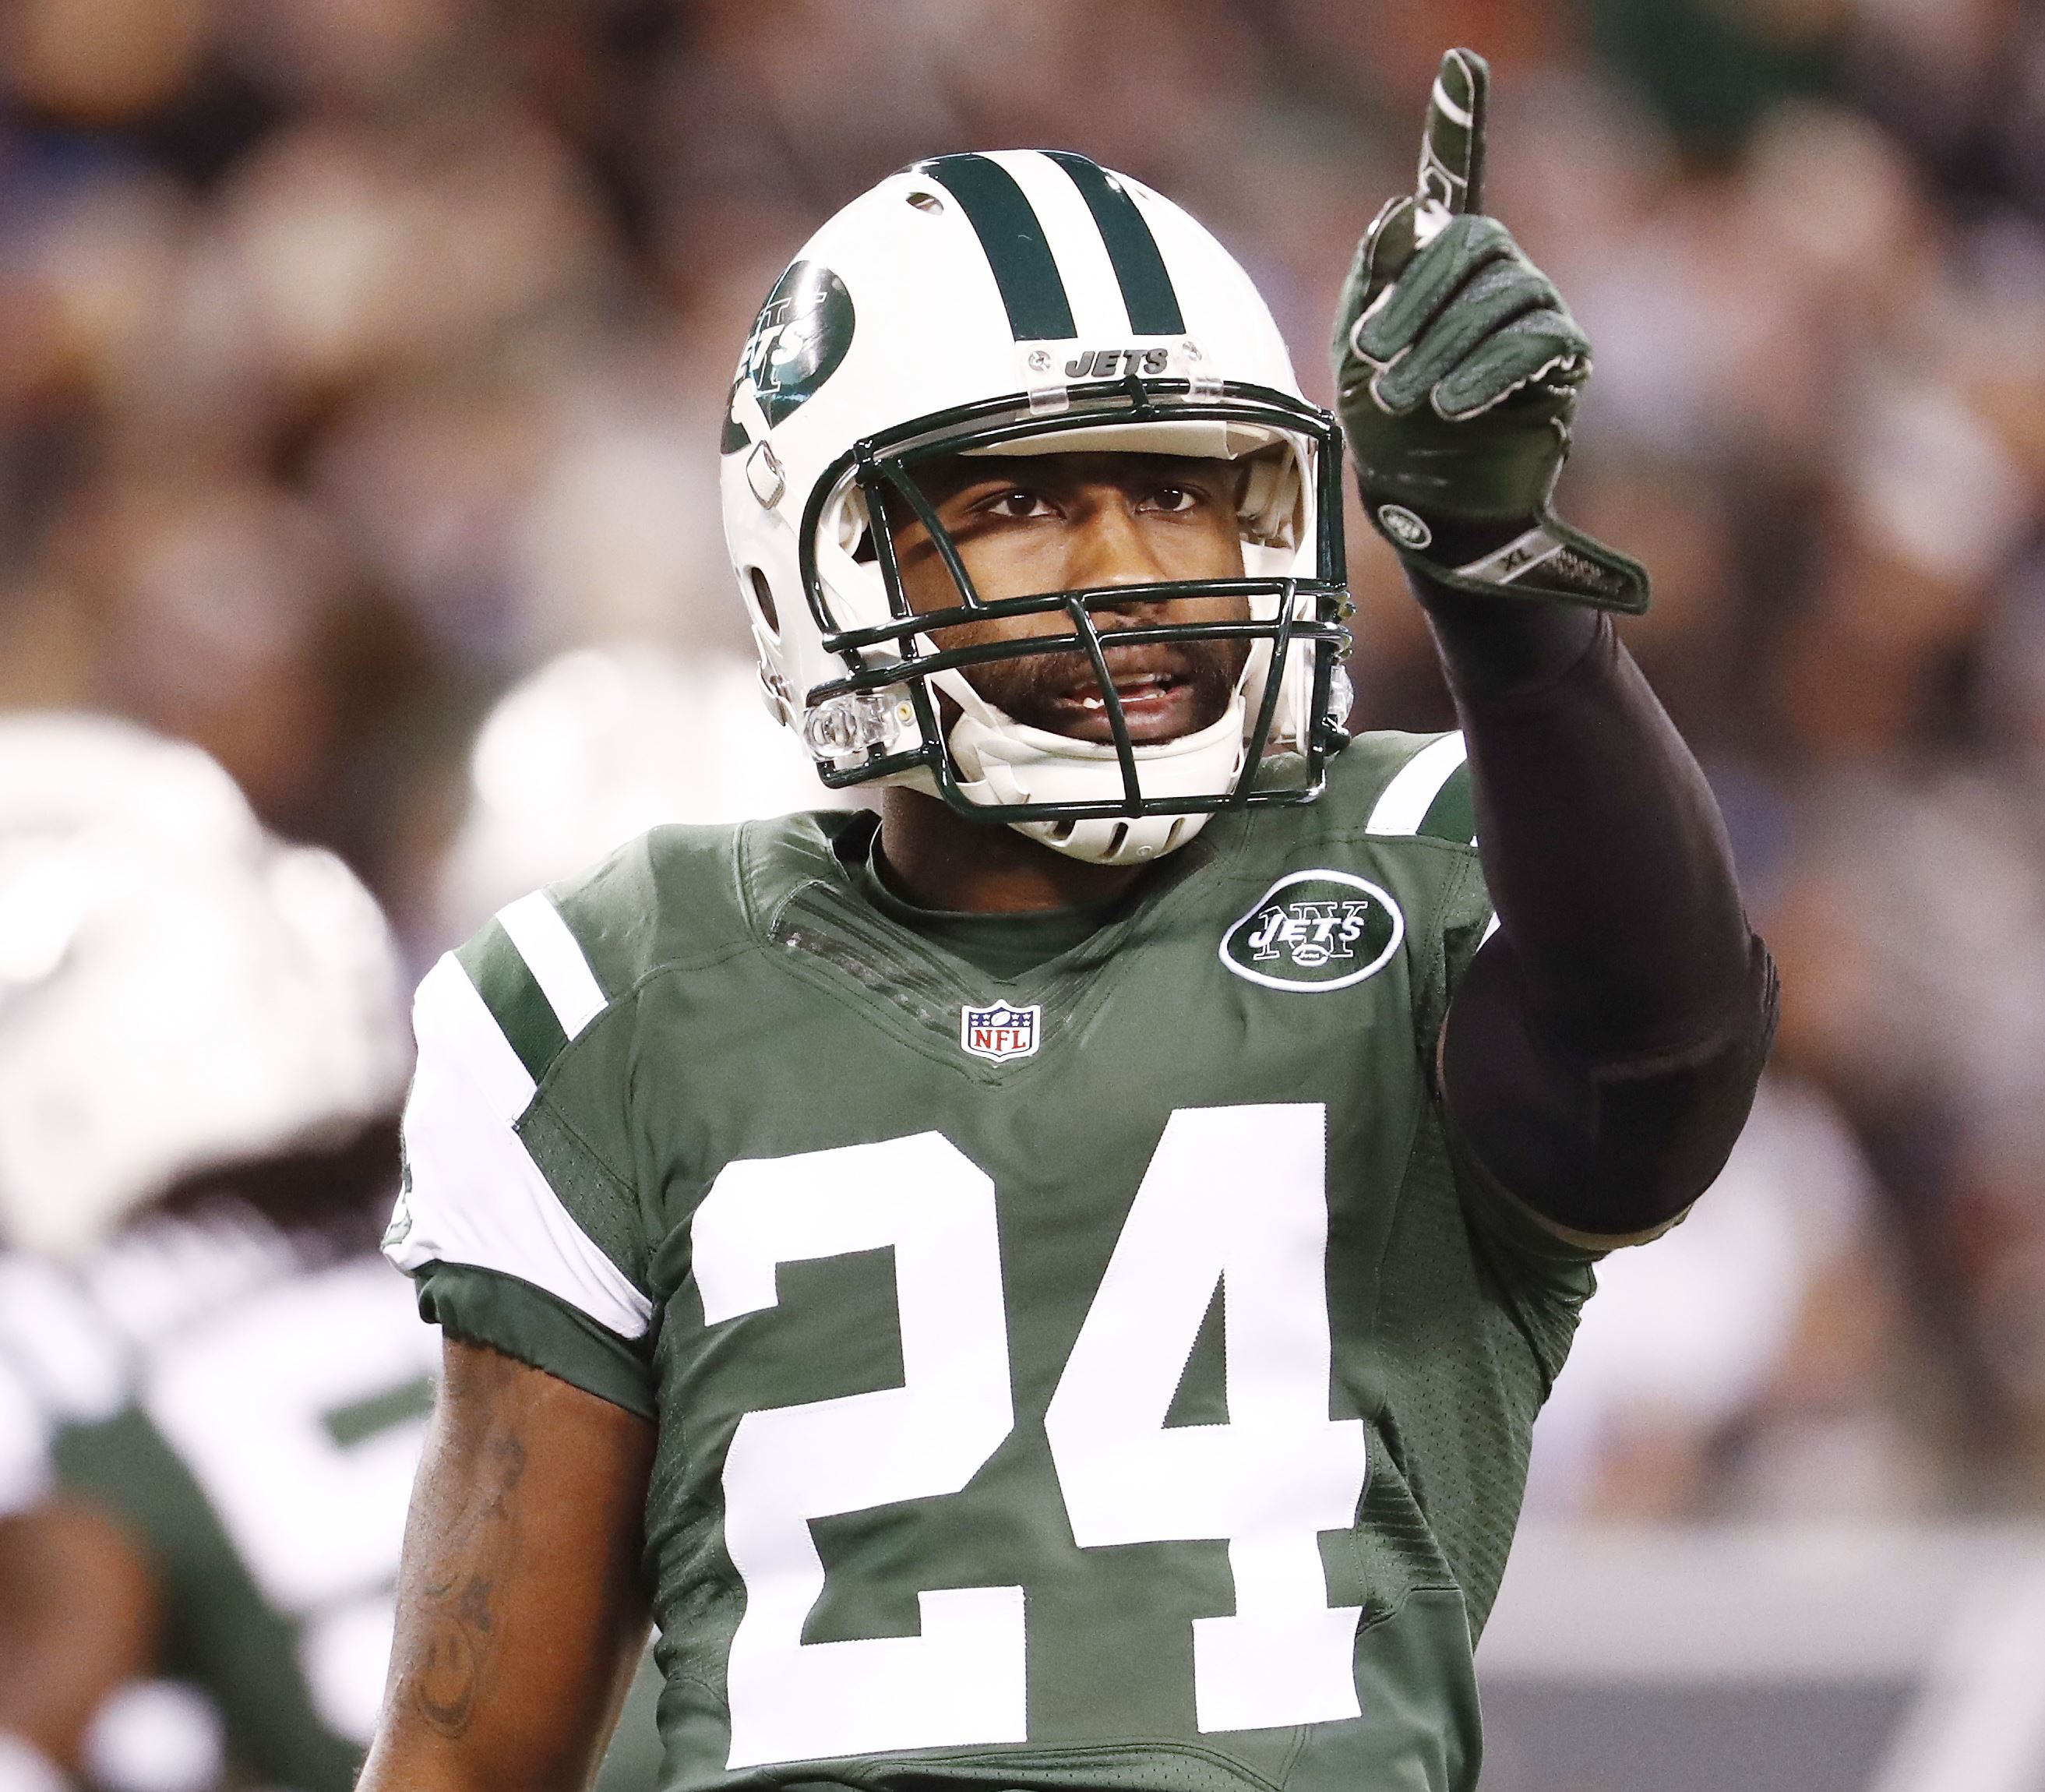 Charges dropped against ex-New York Jets player Darrelle Revis